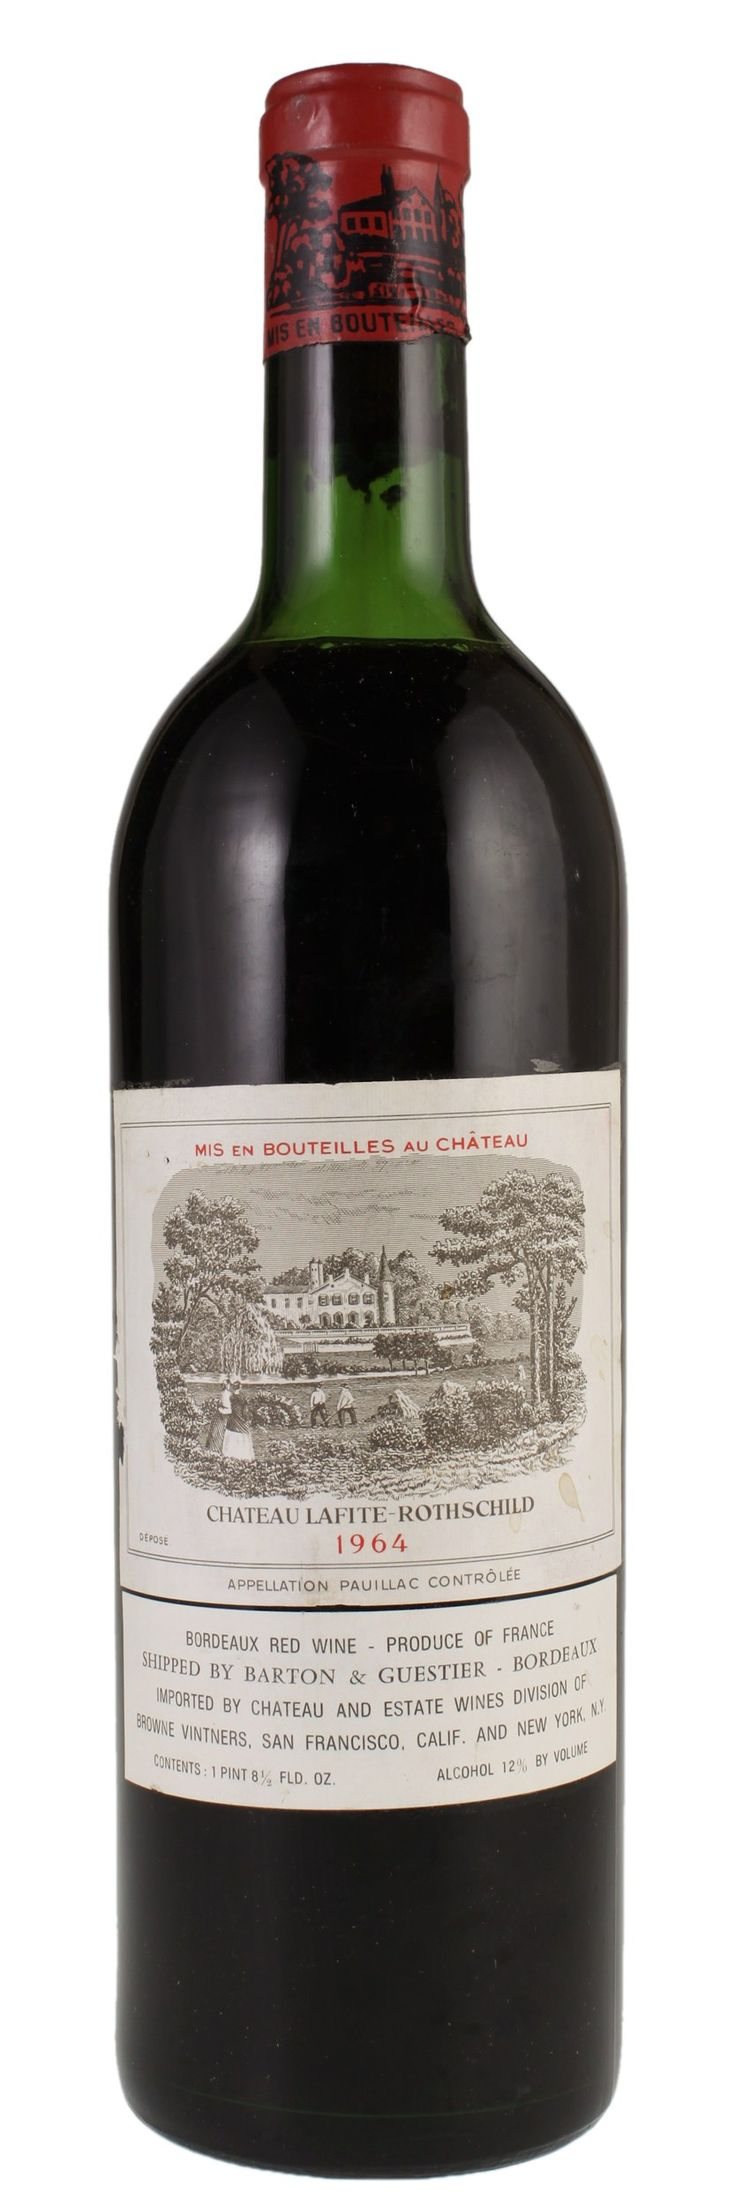 1964 #Chateau Lafite-Rothschild Bordeaux #wine